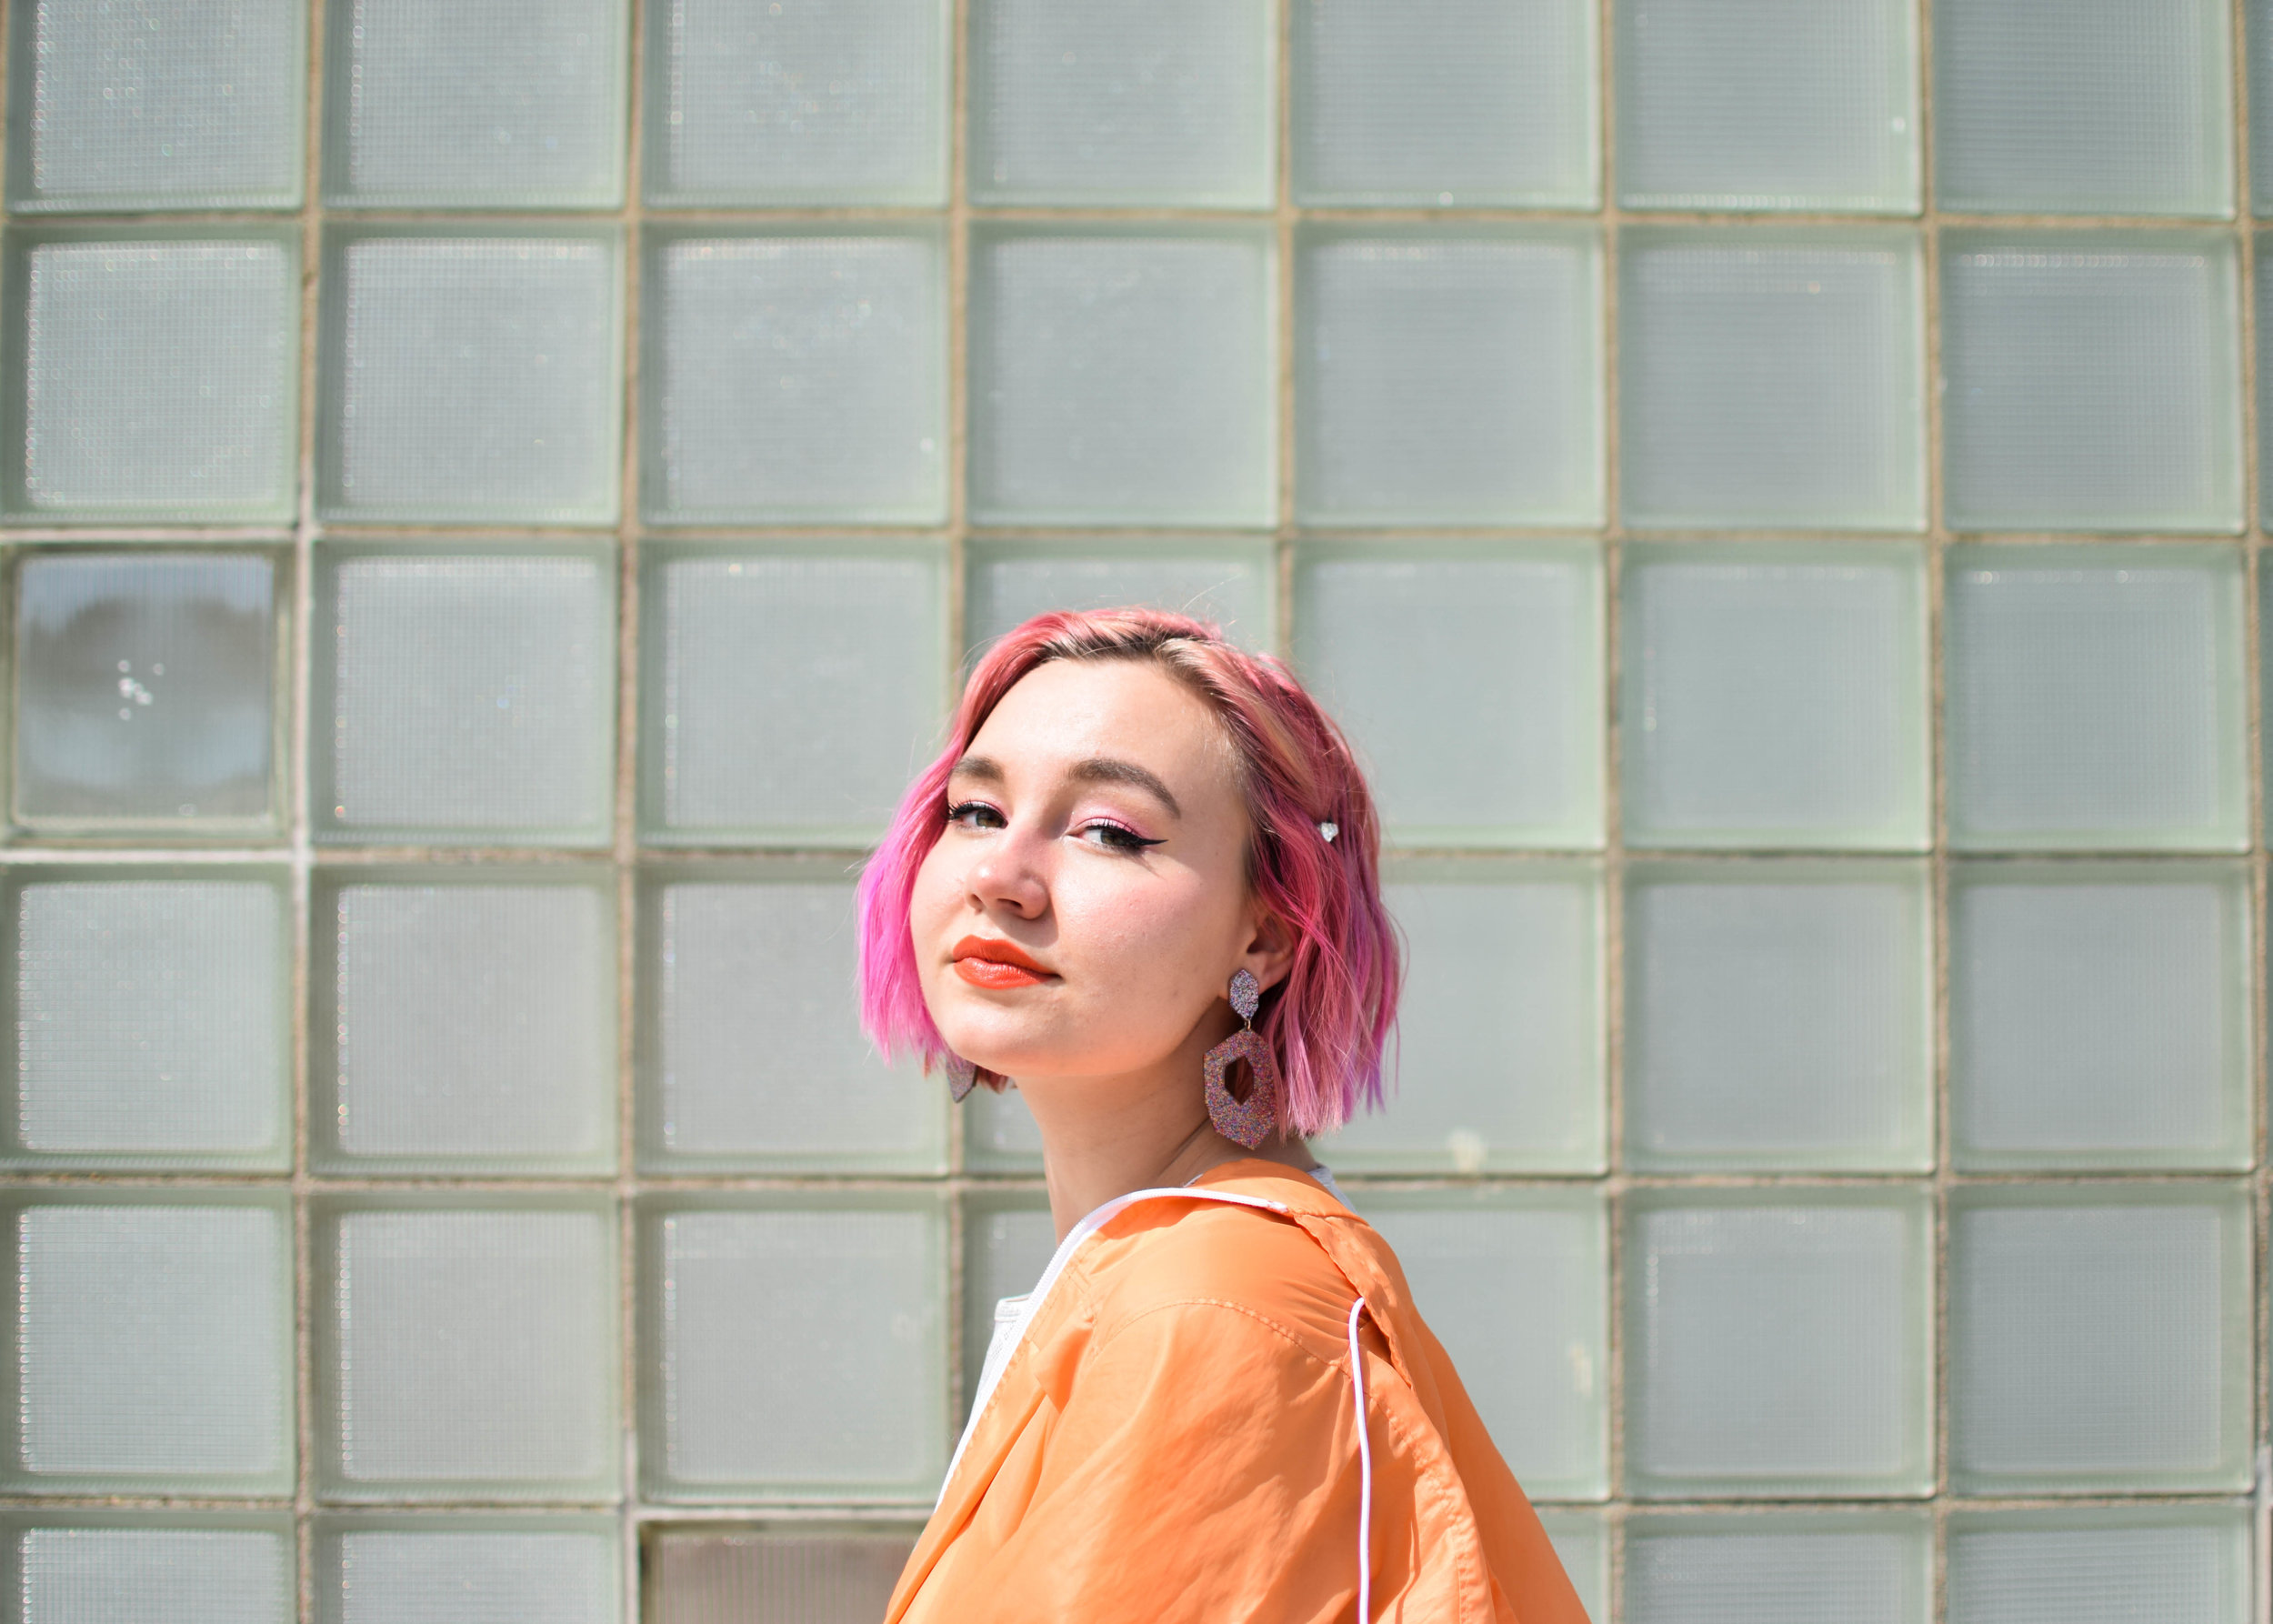 Sarah Robbins - Sarah Robbins is an ethical fashion blogger, a student of English, and a general advocate for caring too much. She spends her free time dying her hair various shades of pink.Website